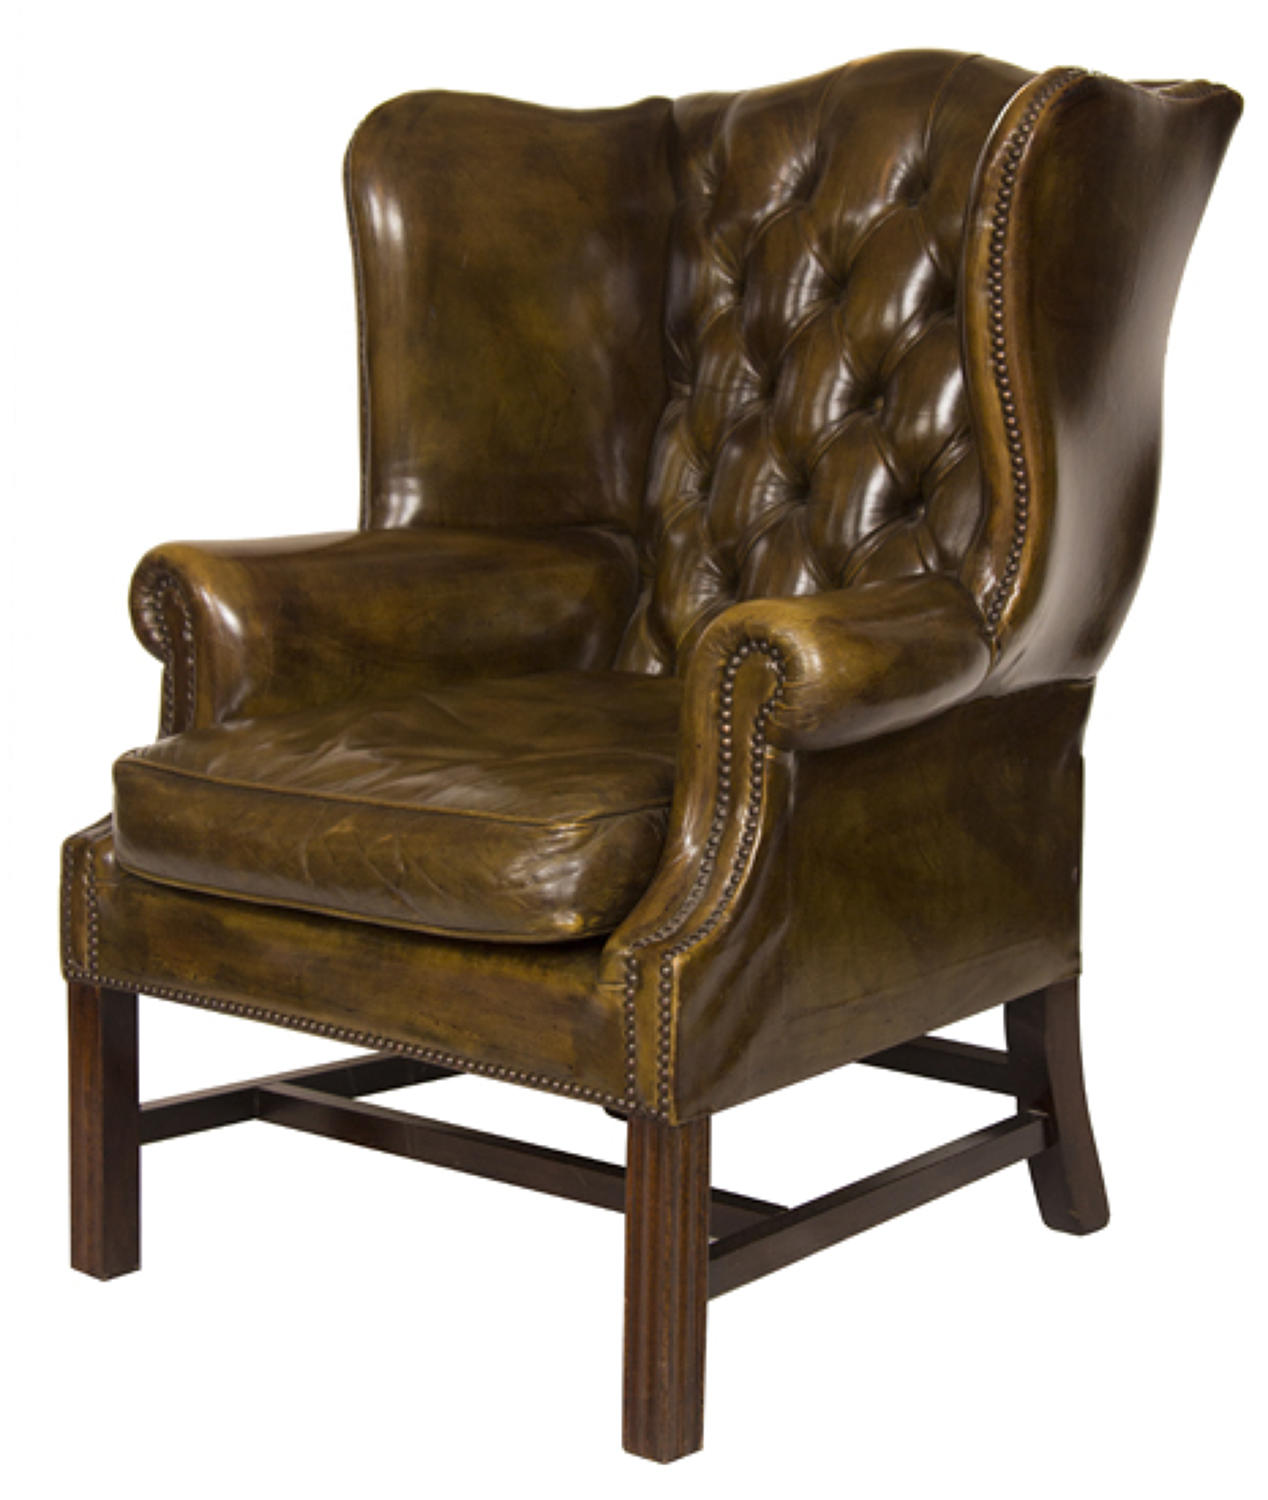 A superb deep green leather wing chair